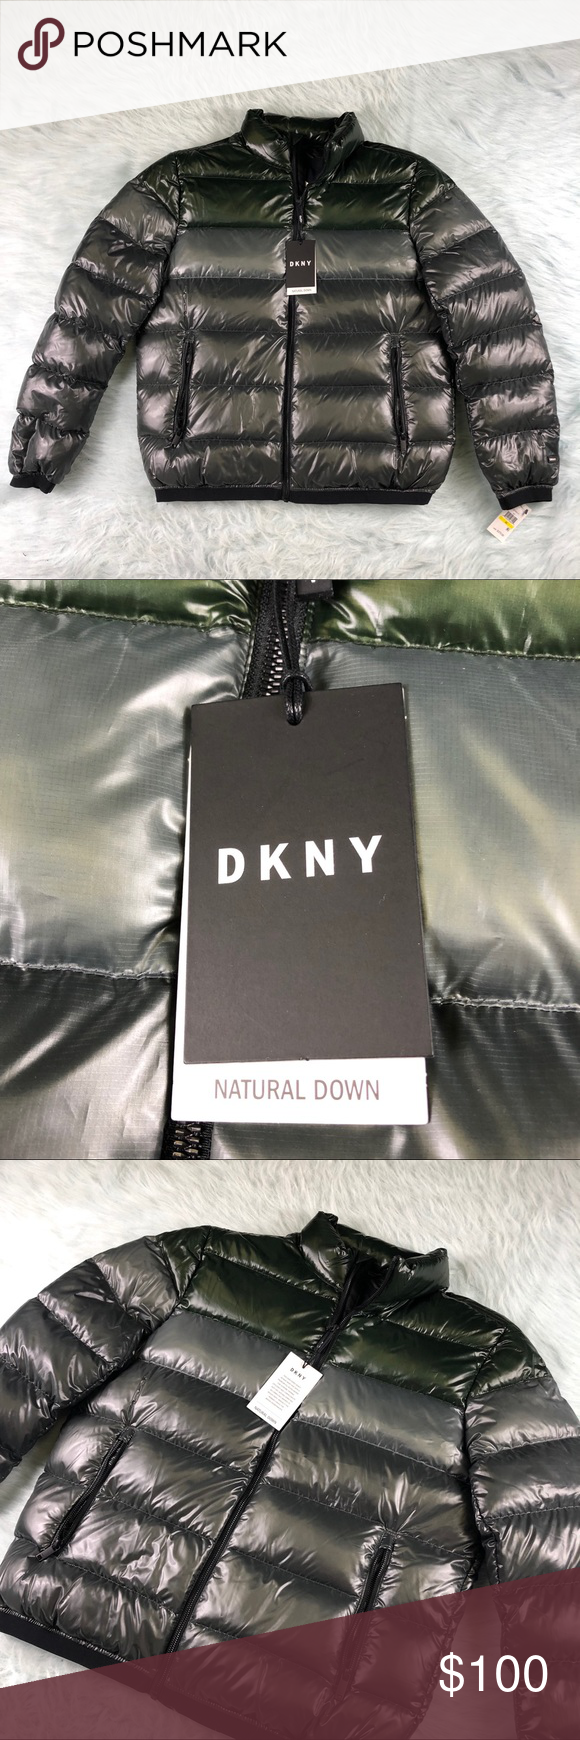 Dkny Natural Down Puffer Jacket Men S Silver Green Puffer Jacket Men Dkny Mens Jackets [ 1740 x 580 Pixel ]